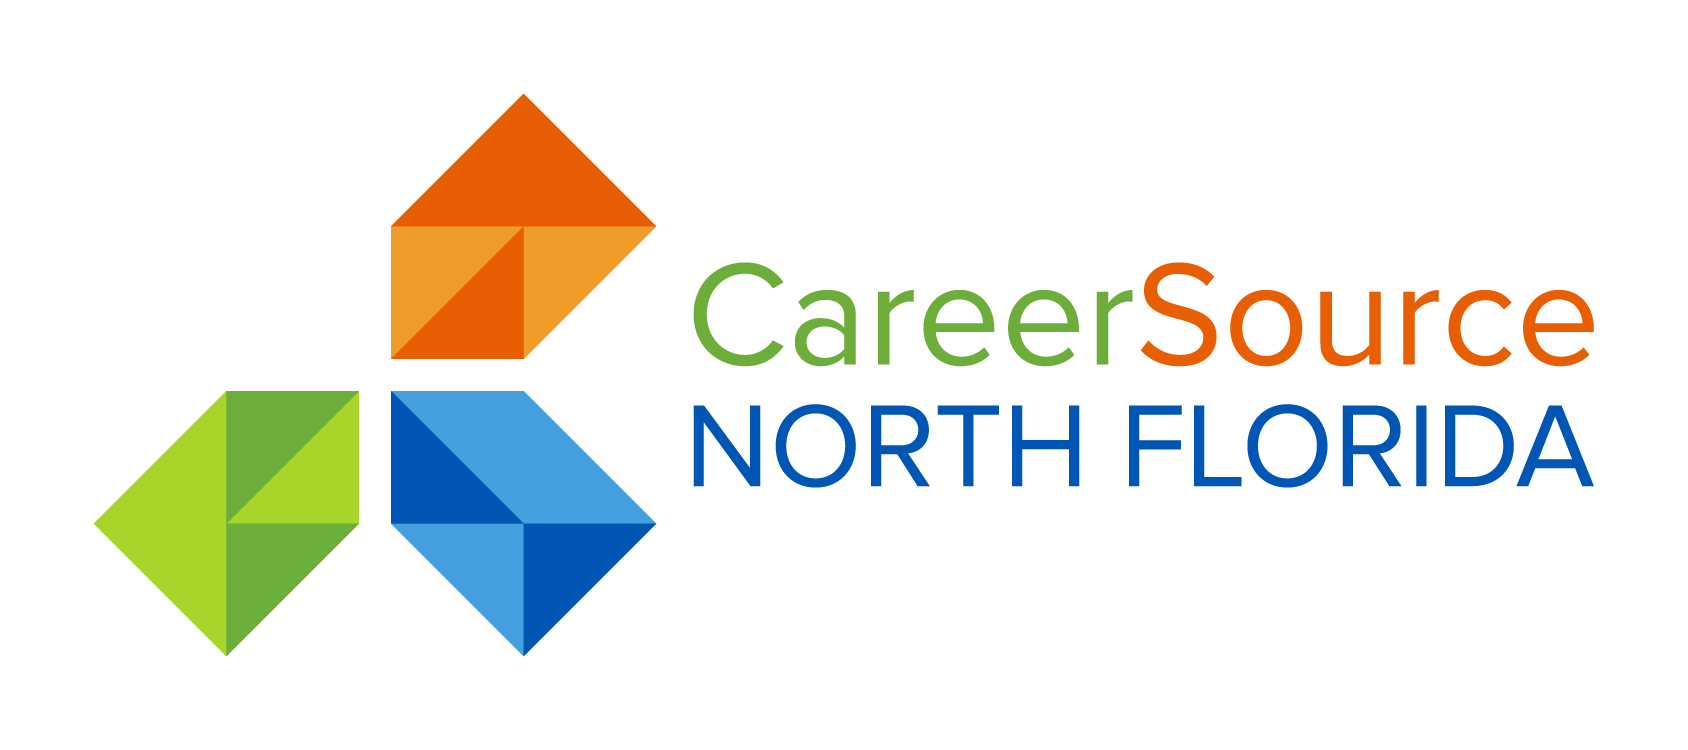 CareerSource el norte de Florida